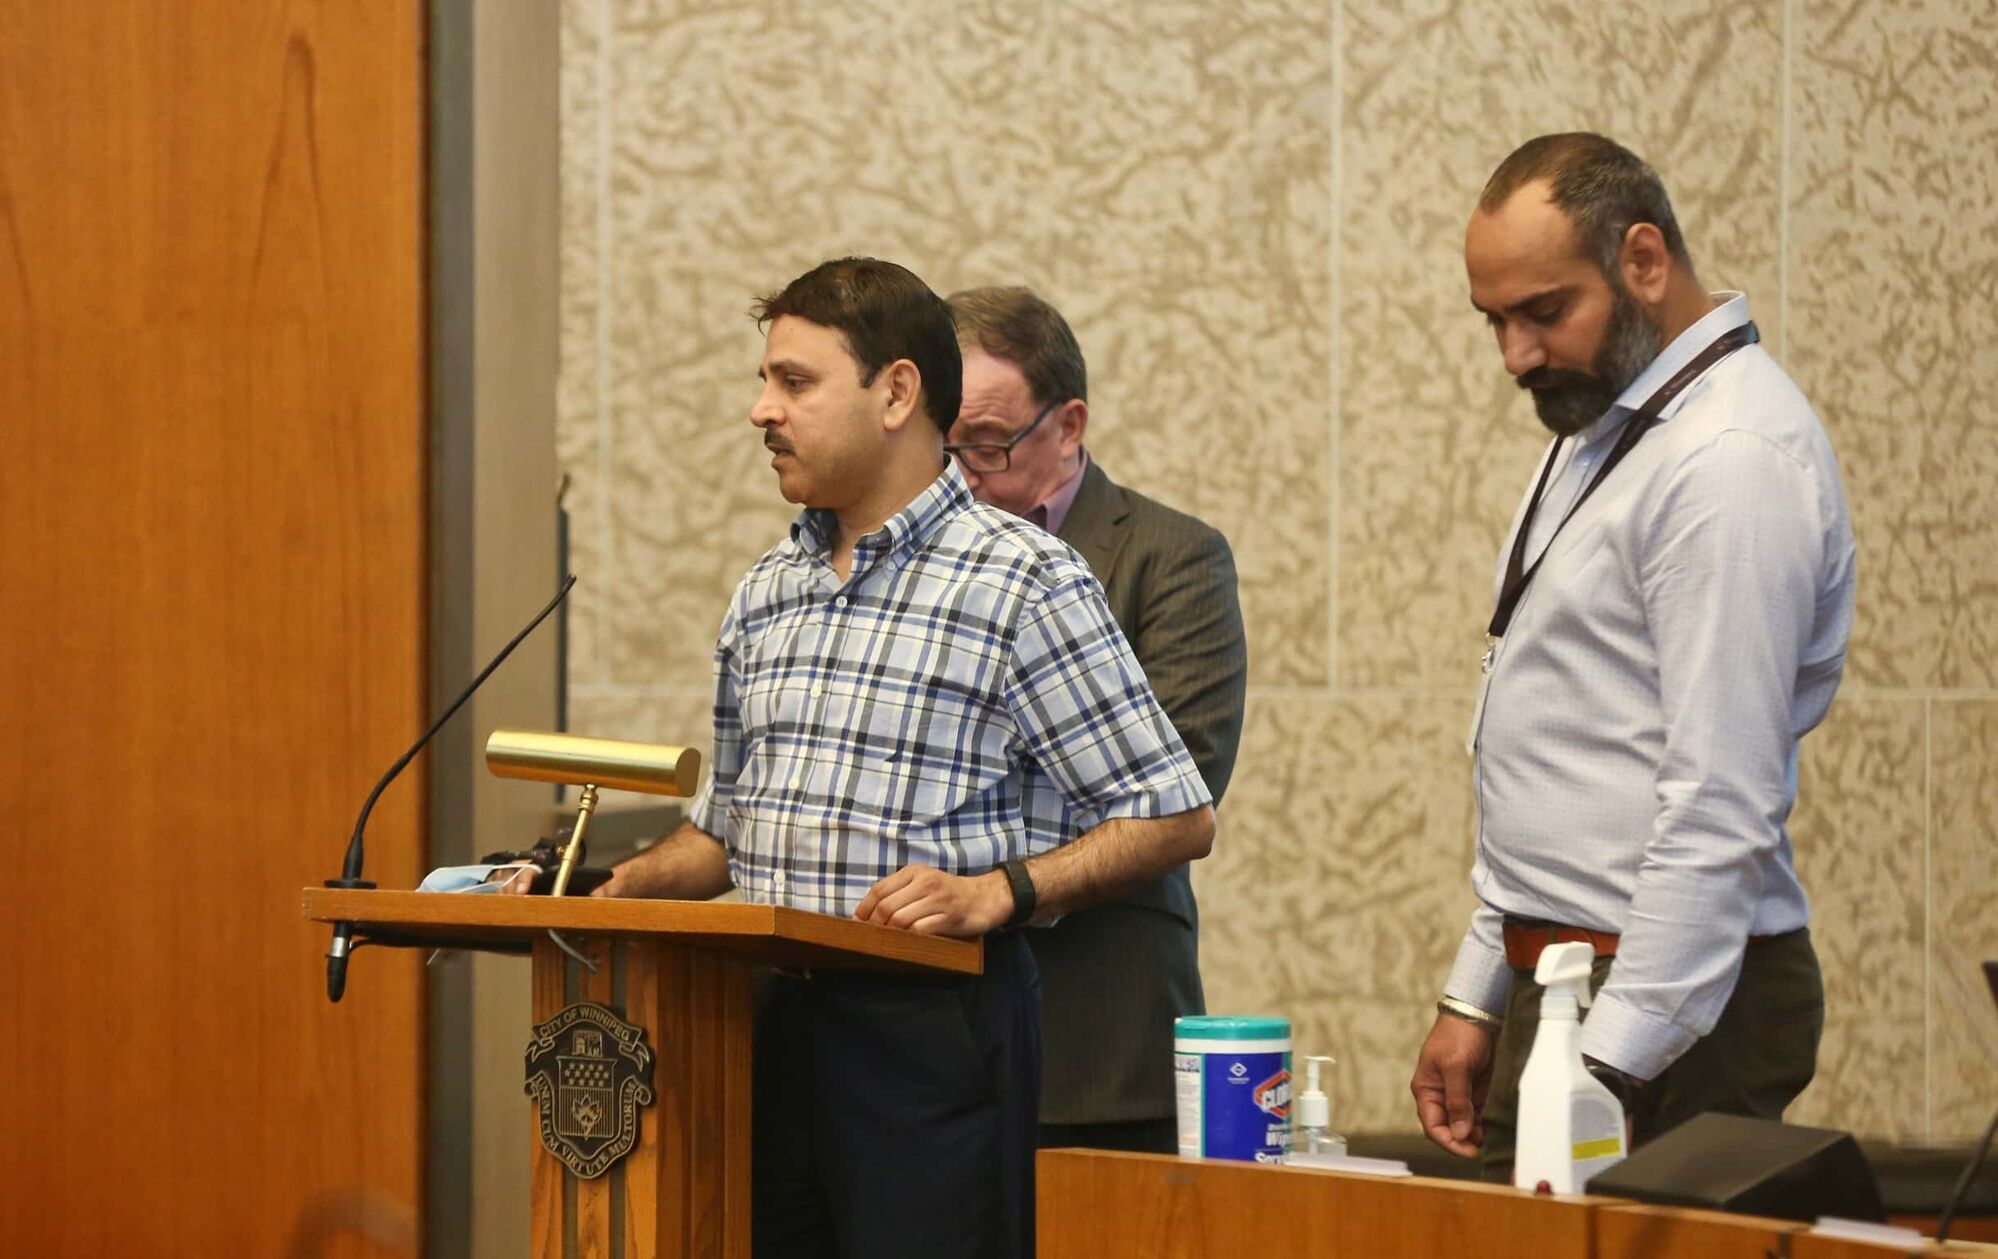 (From left) Ram Valluru, GM for Duffy's Taxi and Harjit Chahal, GM for Unicity Taxi, spoke today at the City Hall requesting financial support for the the taxi industry because of the the ramifications from the coronavirus pandemic. (Mike Deal / Winnipeg Free Press)